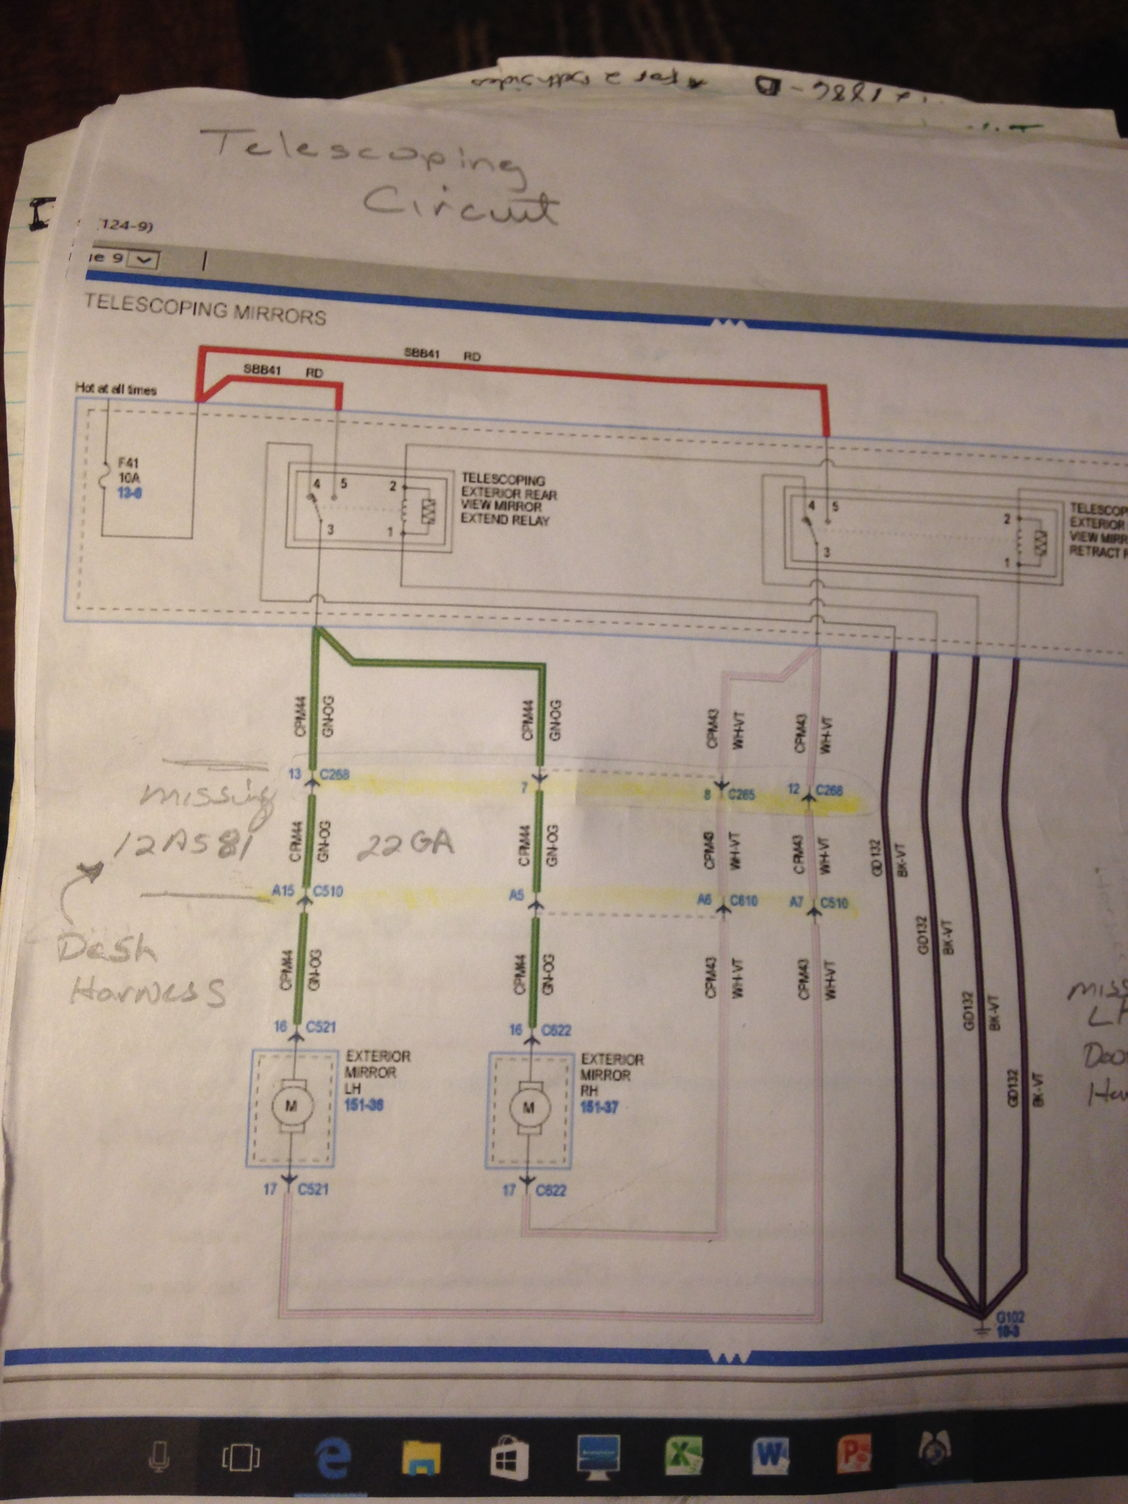 I Have The Wire Diagram For The 2015 F150 Model On The Xlt The Dash Harness